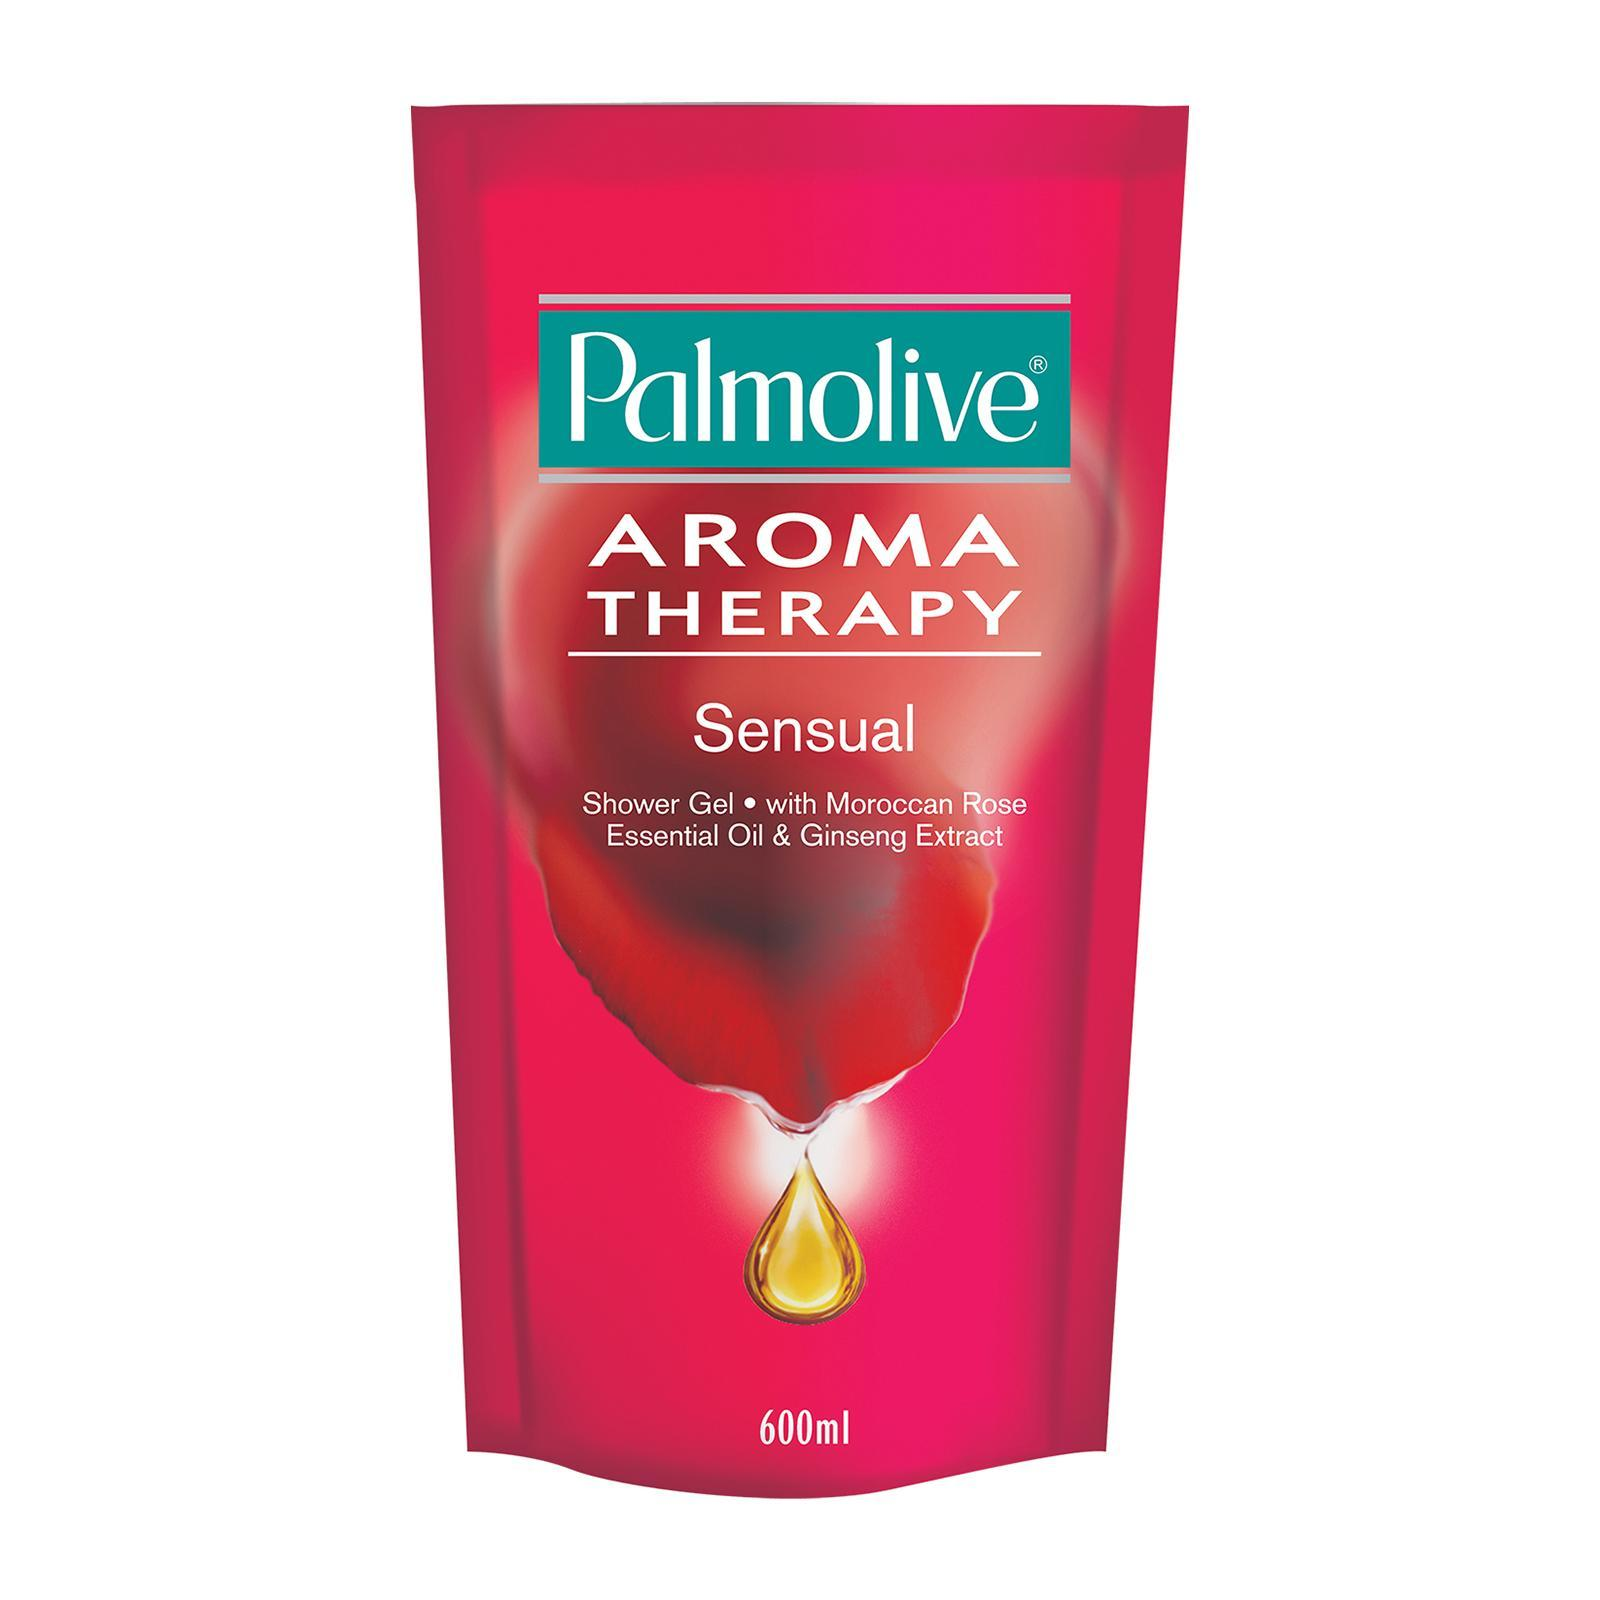 Palmolive Aroma Therapy Sensual Shower Gel Refill